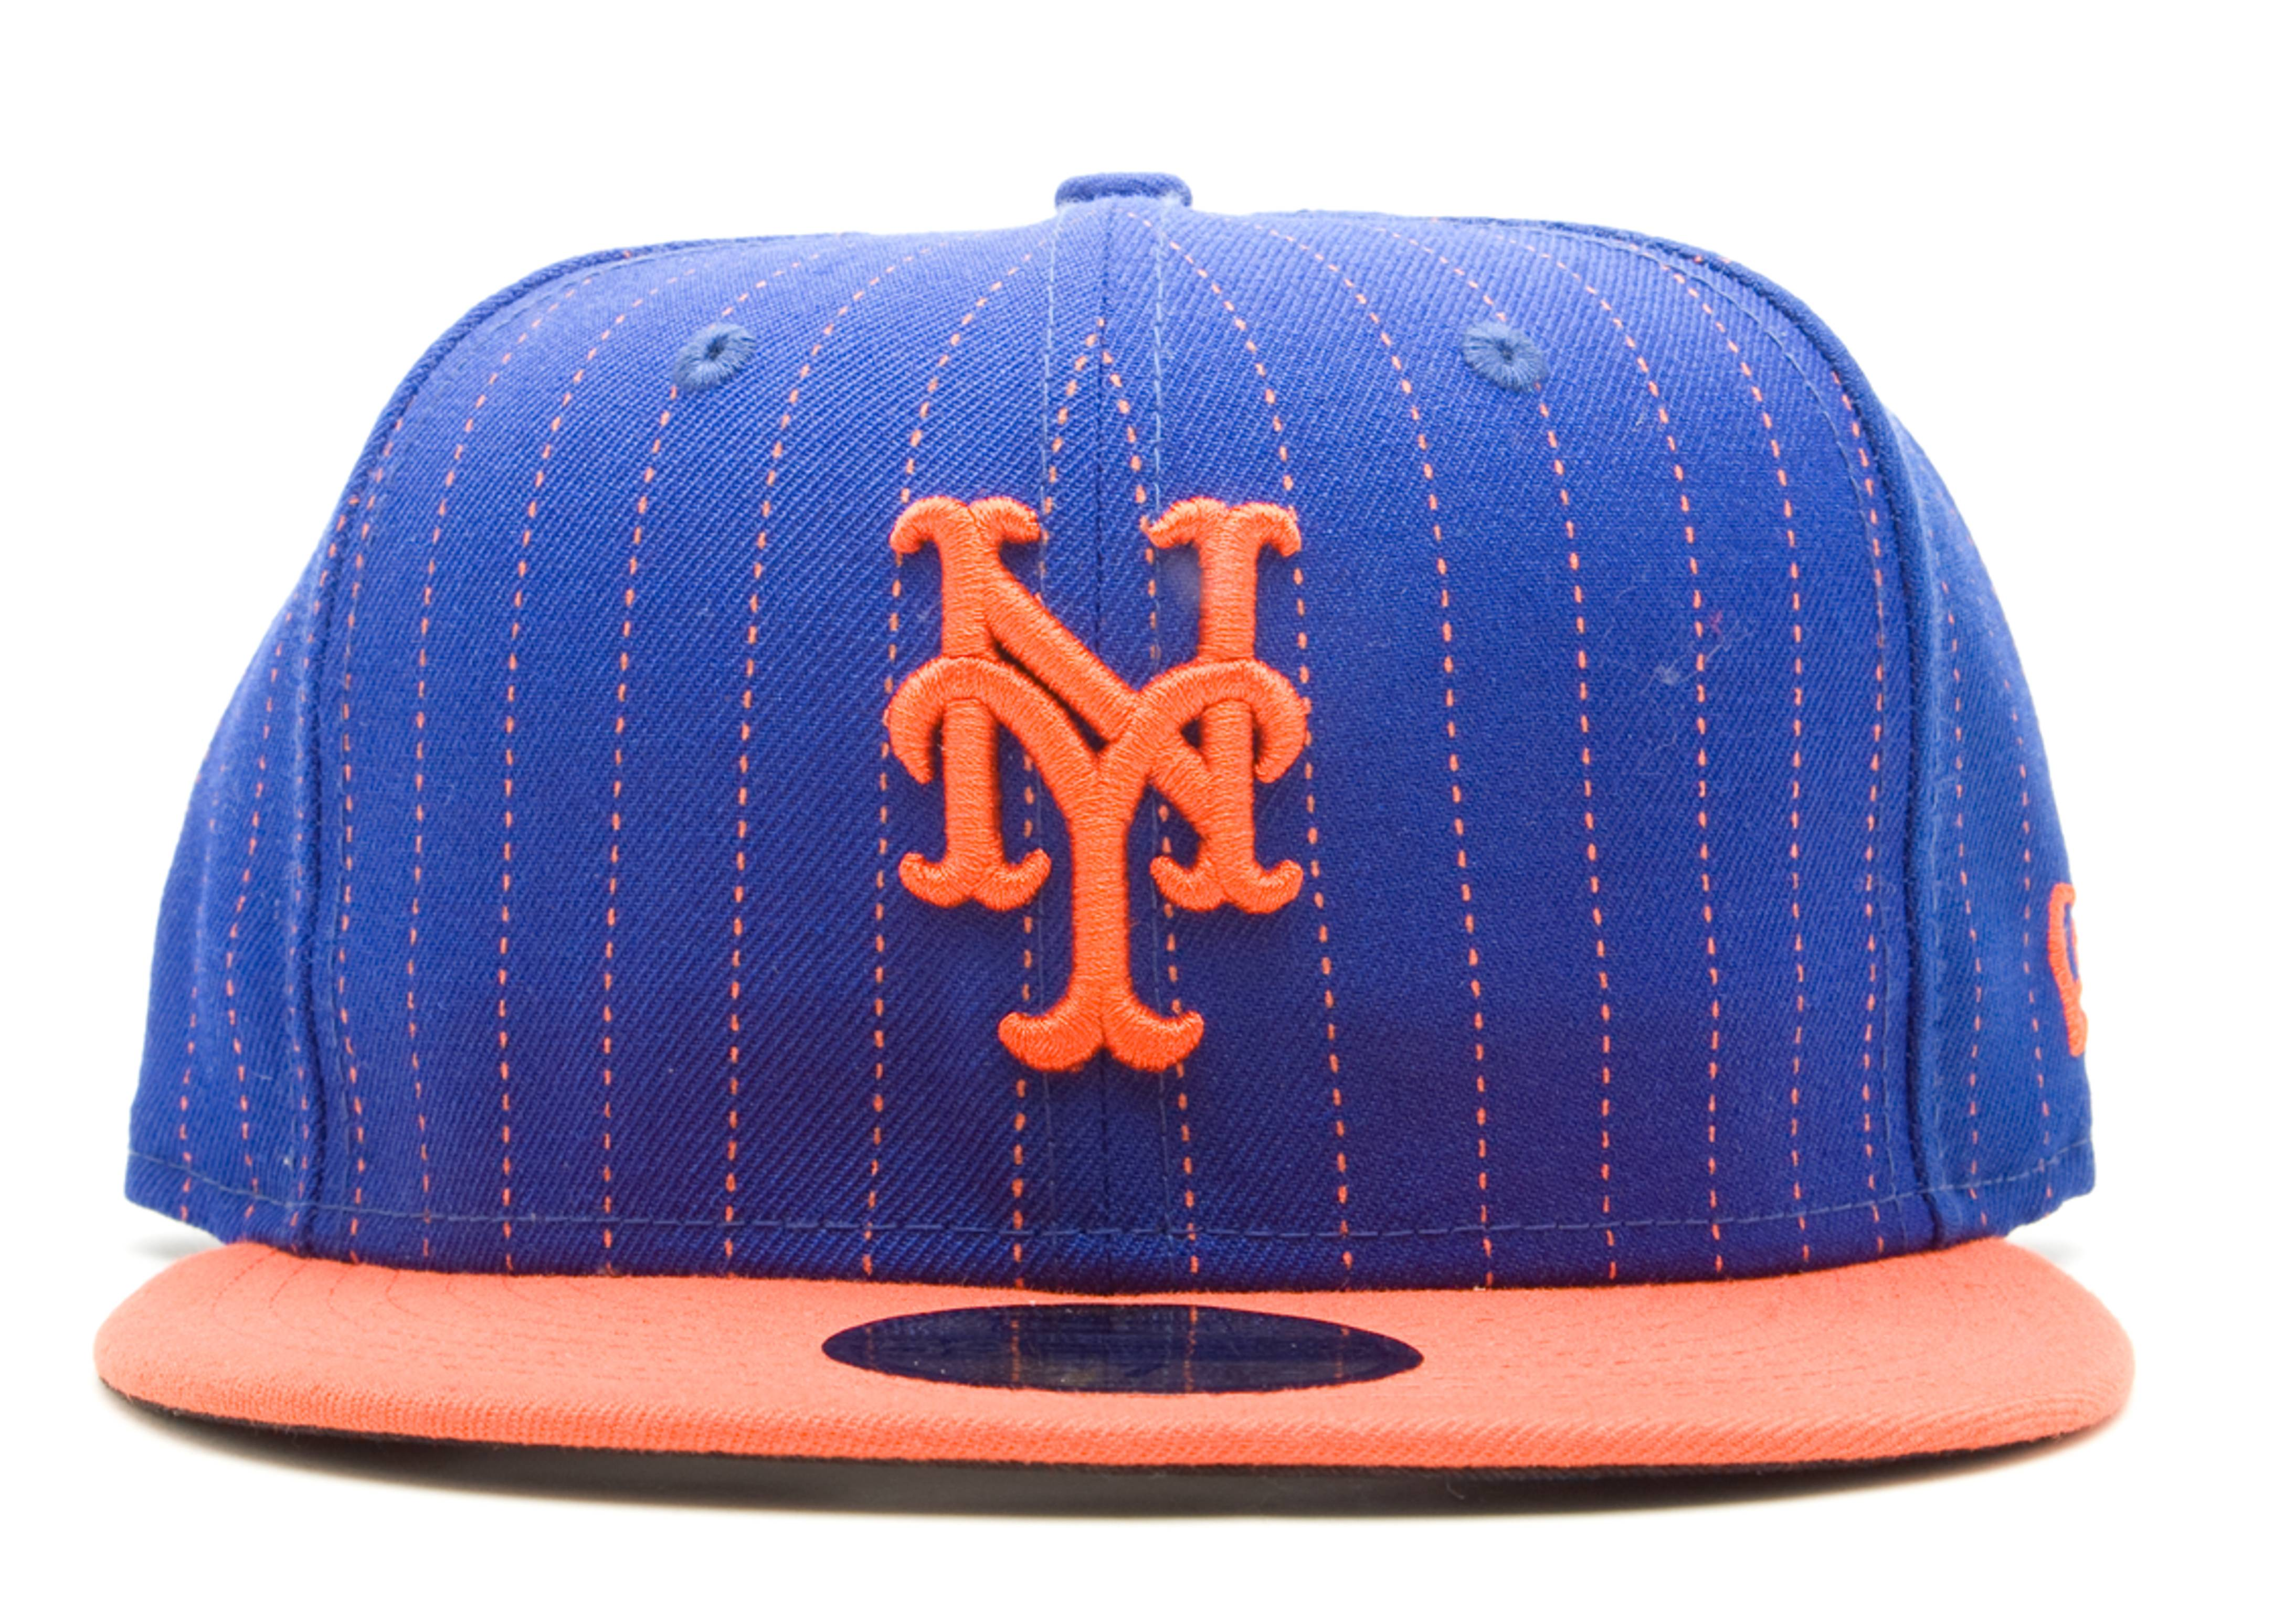 new york mets strips fitted